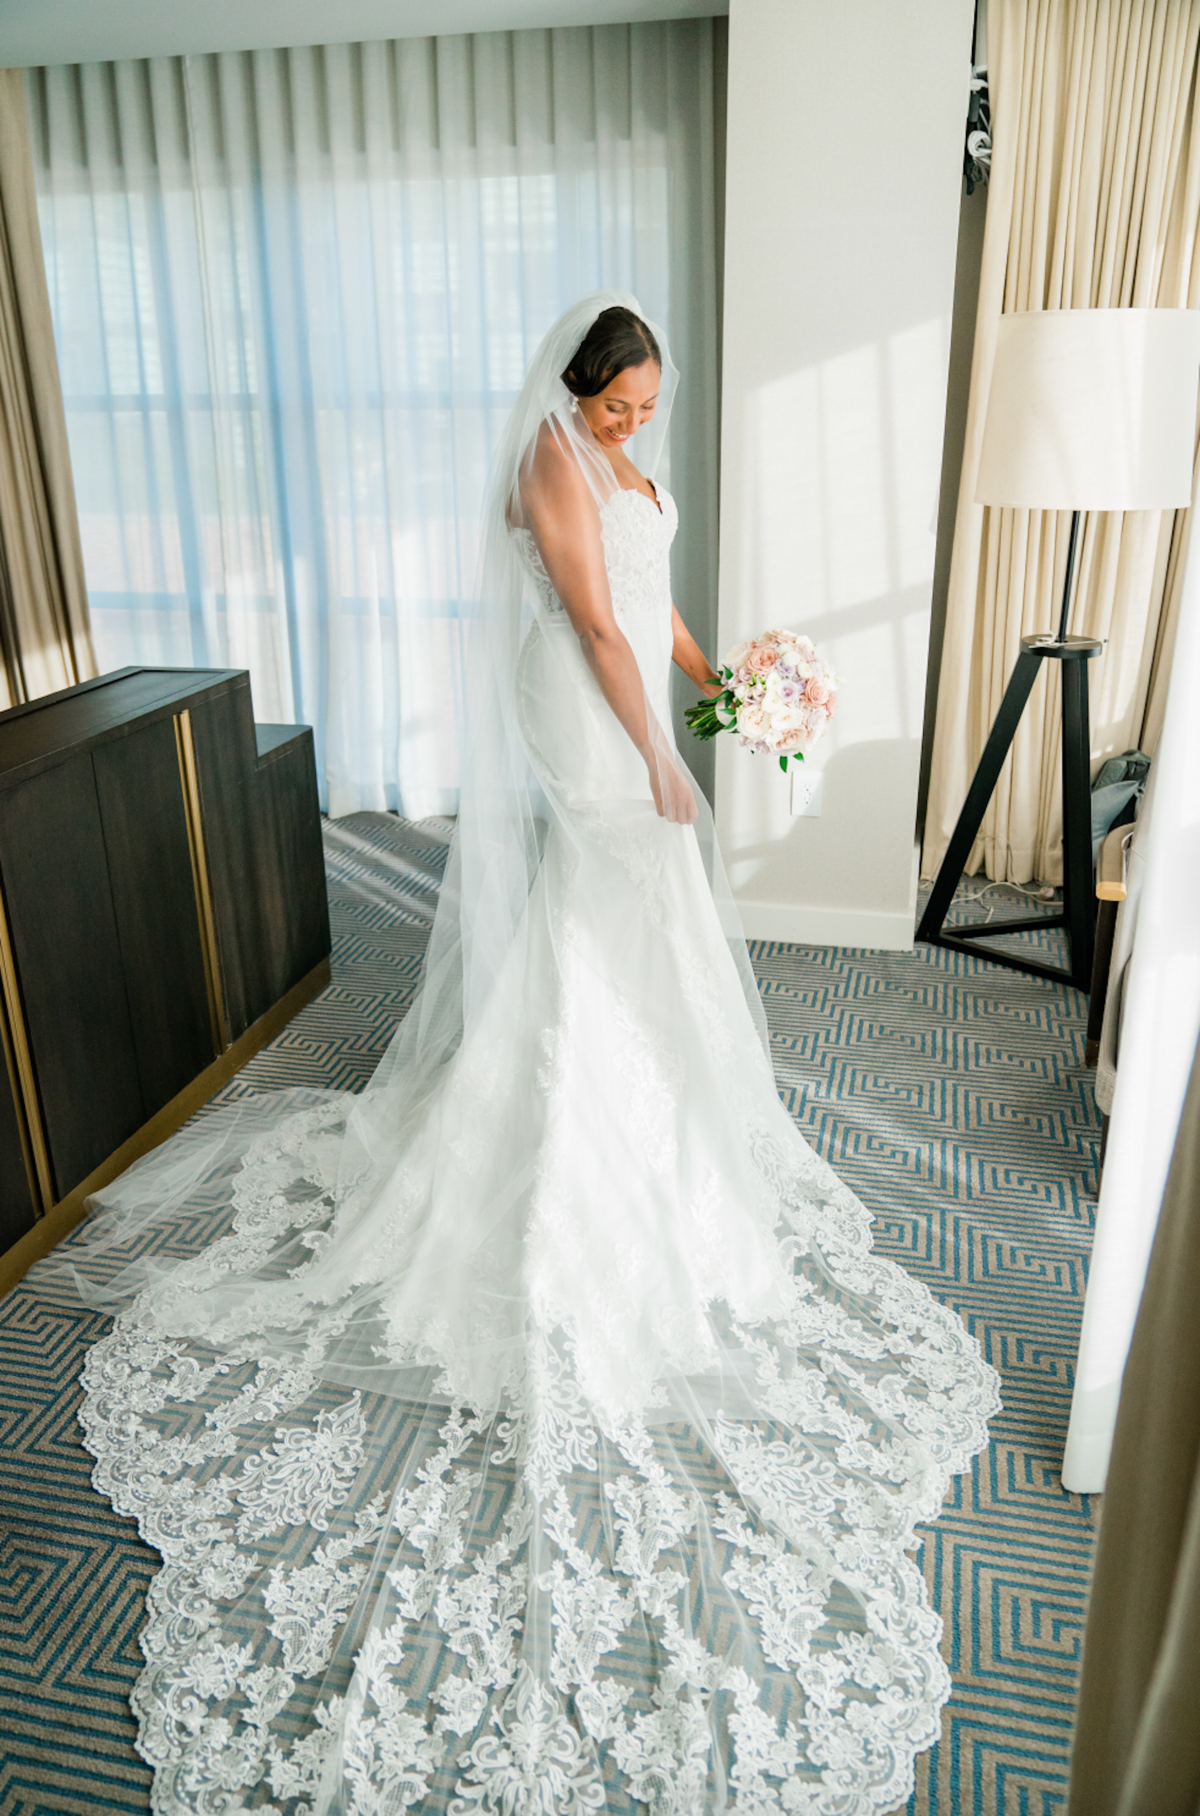 intercontinenal-wedding-planning-washington-dc-the-finer-points-planning00002